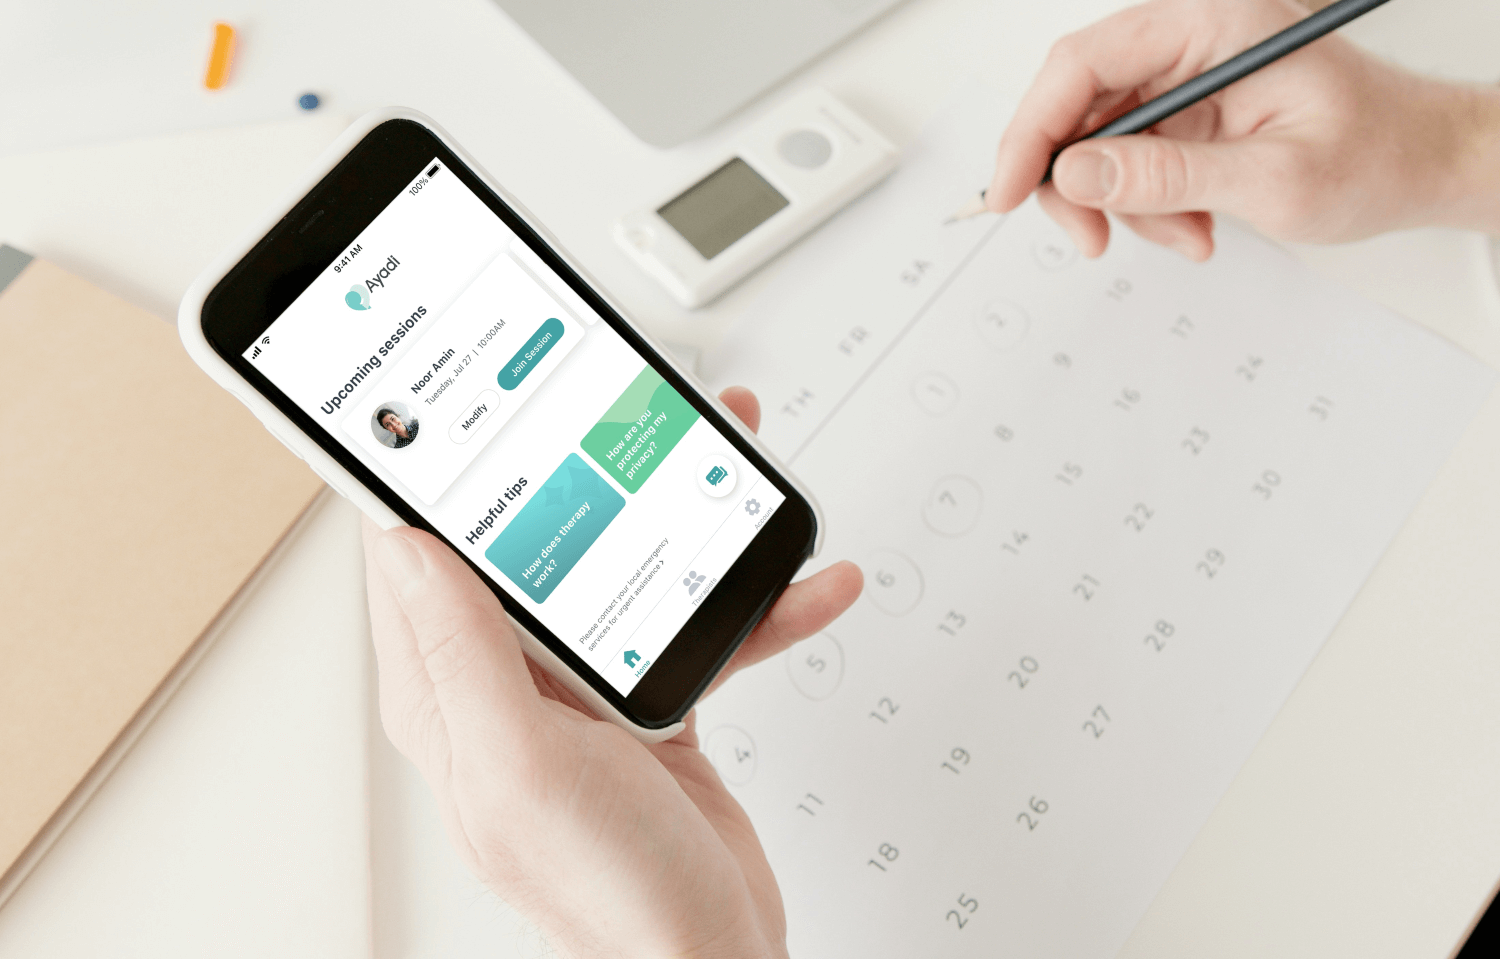 HIPAA compliance for healthcare apps